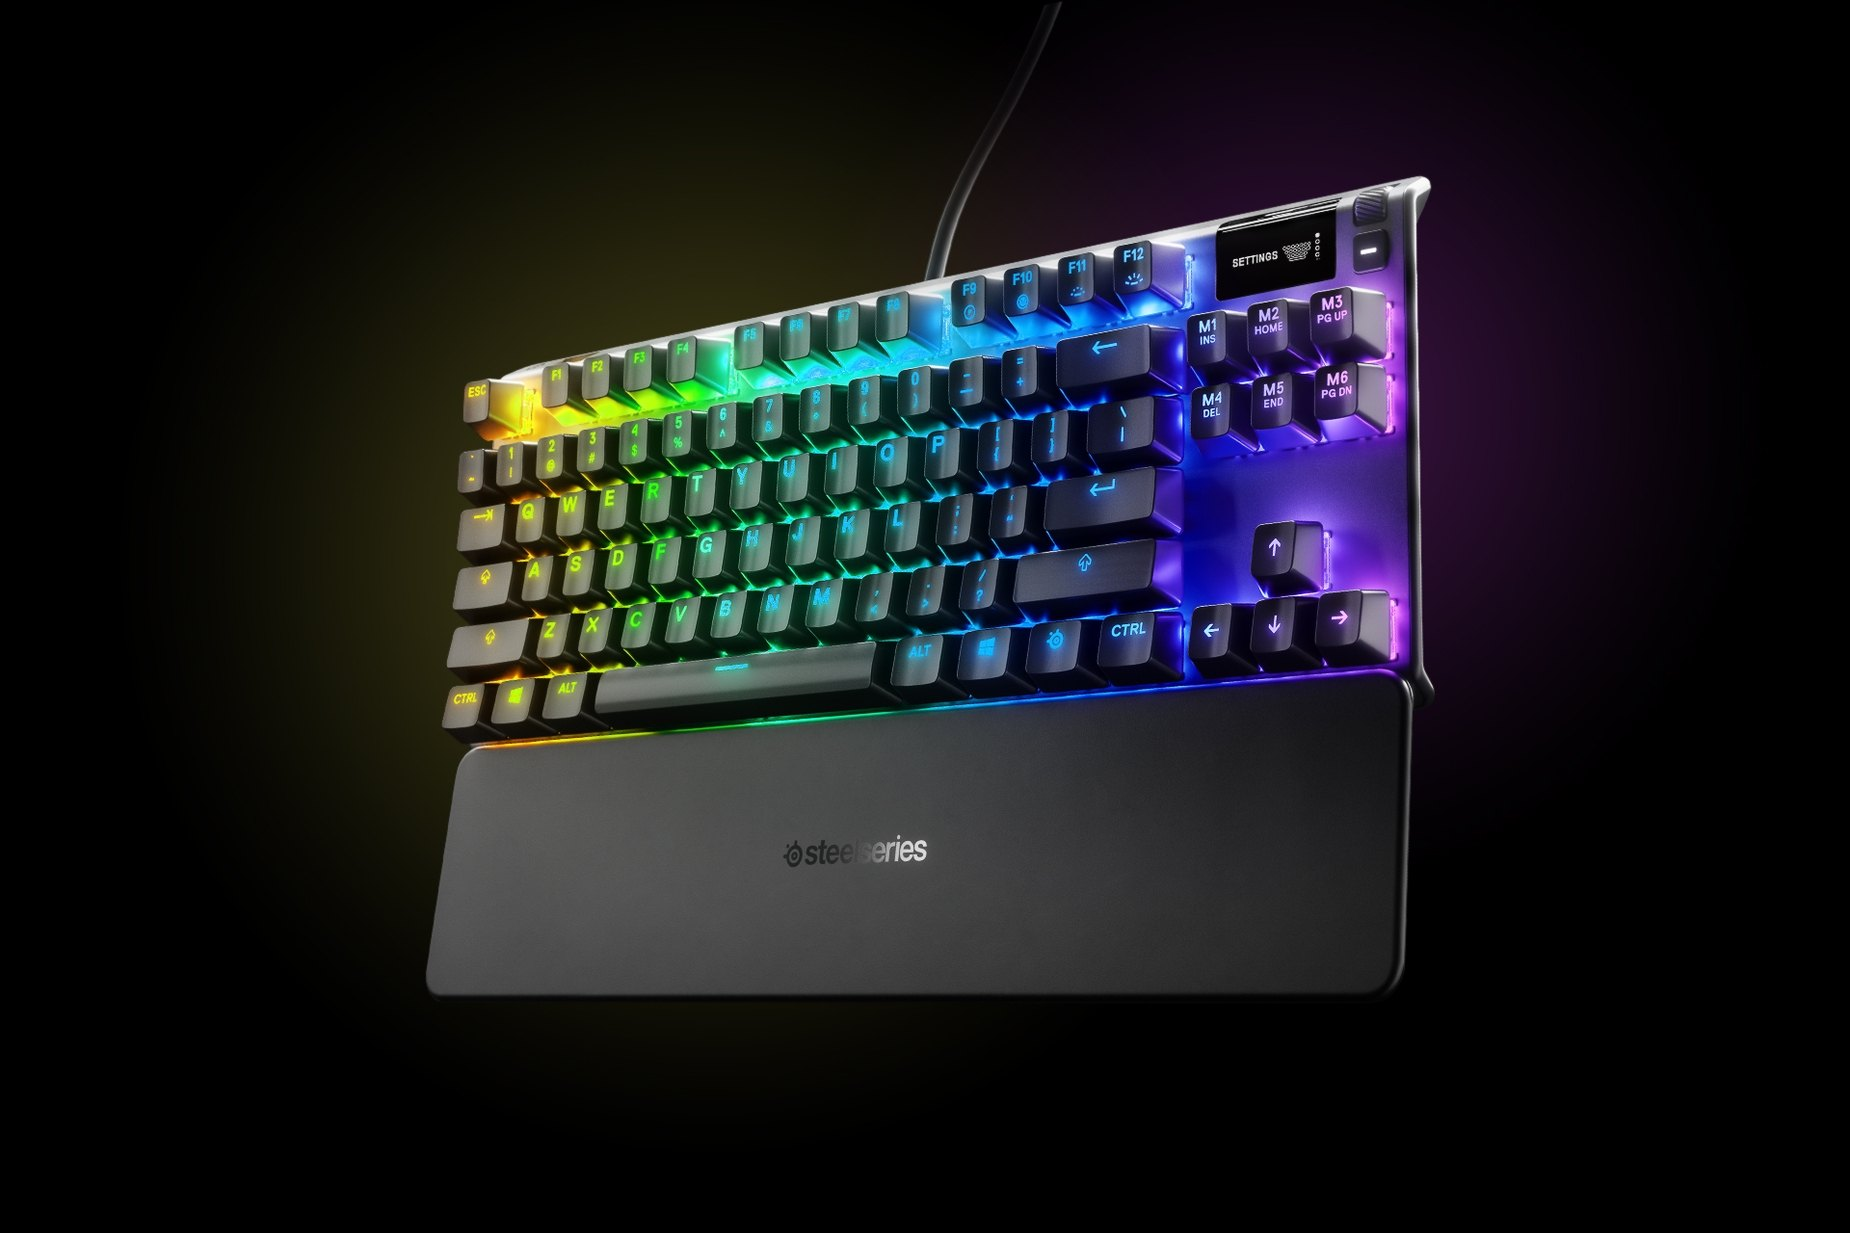 Japonca - Apex 7 TKL (Kırmızı Anahtar) gaming keyboard with the illumination lit up on dark background, also shows the OLED screen and controls used to change settings and adjust audio